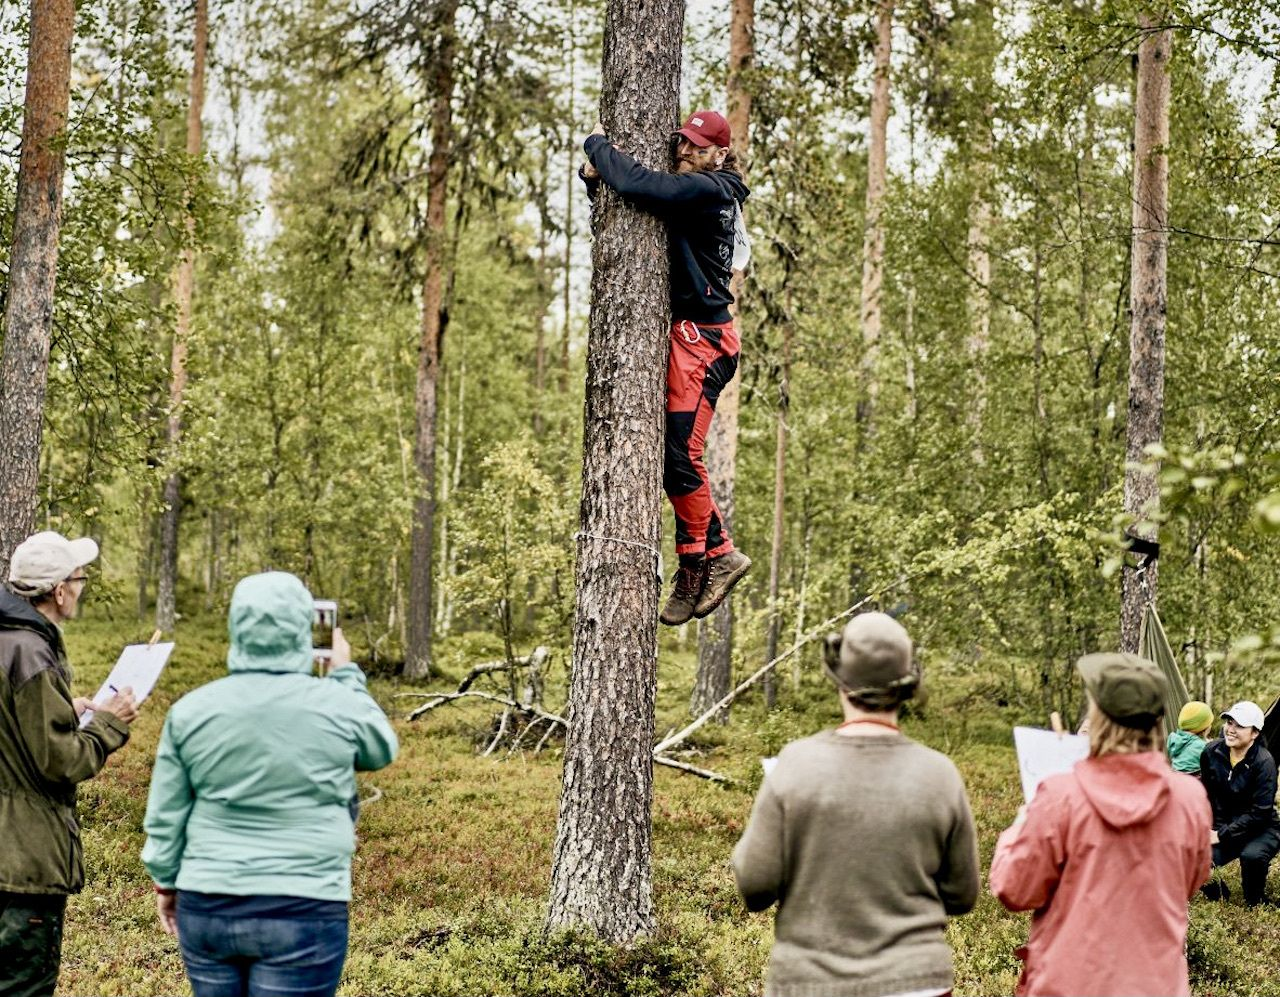 Hug a tree and you could win a trip to northern Finland